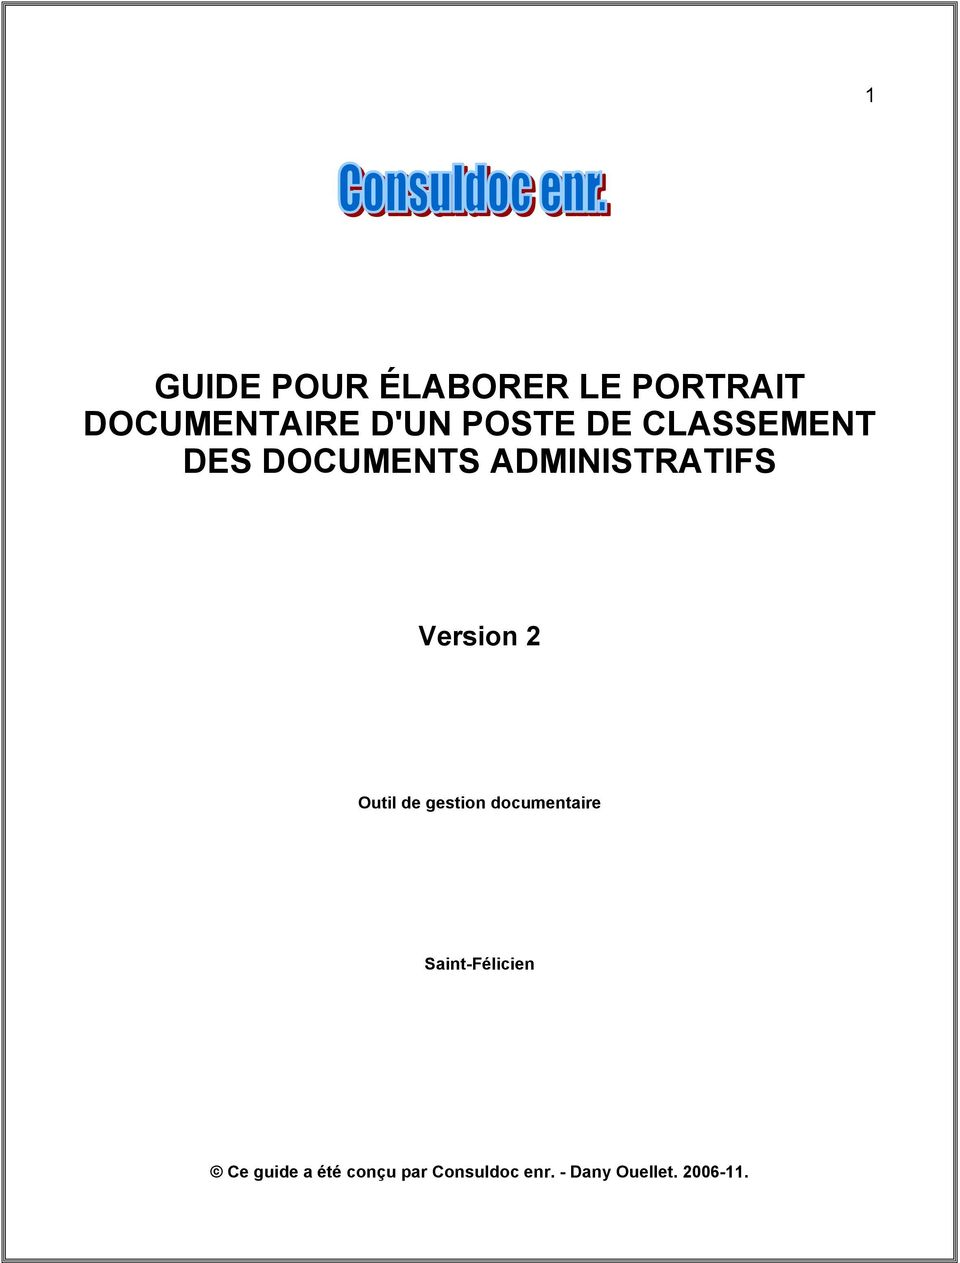 DES DOCUMENTS ADMINISTRATIFS Version 2